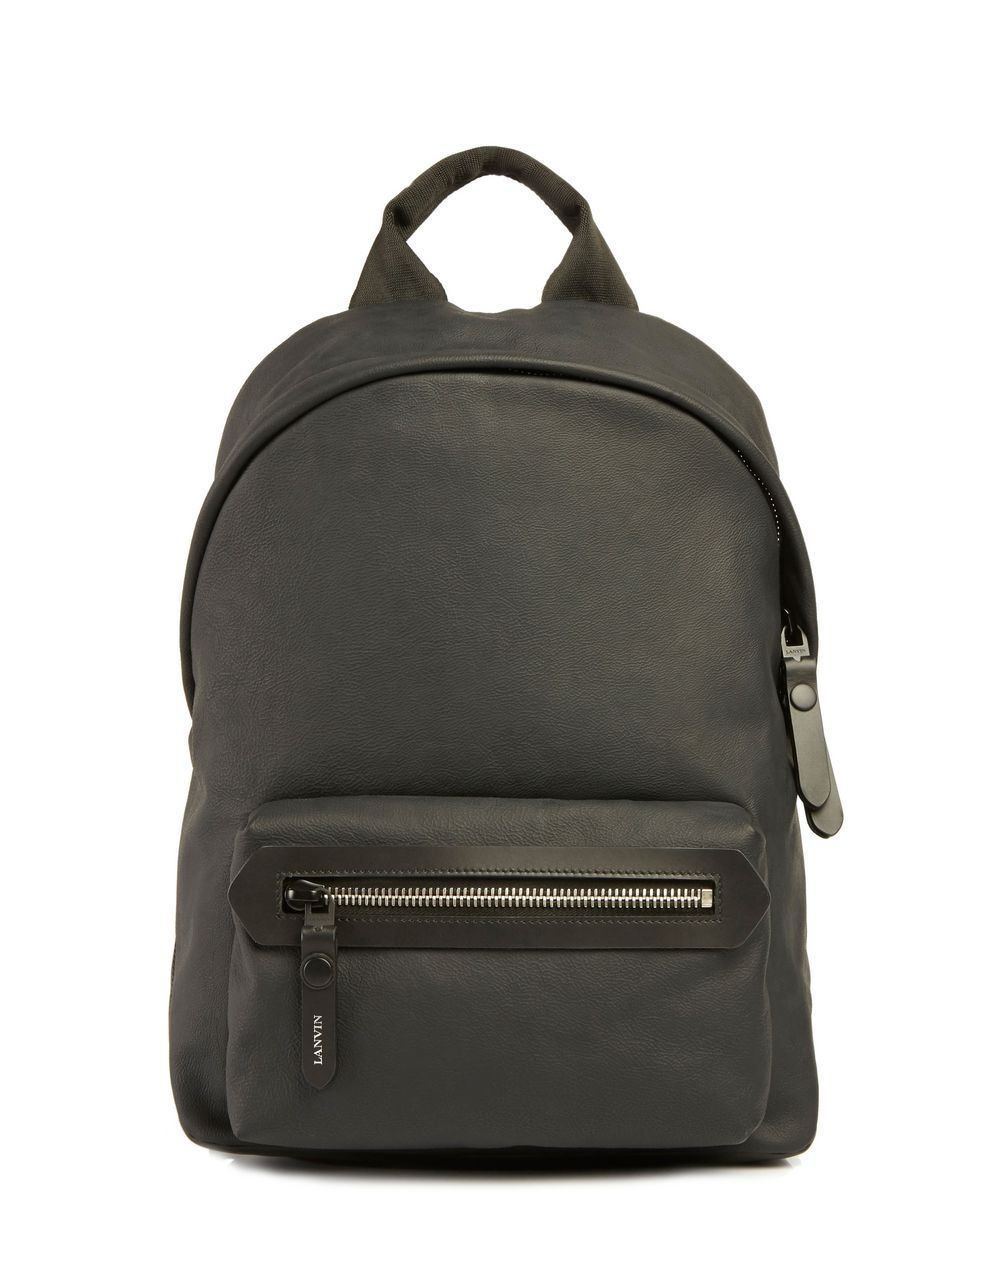 RUBBER CALFSKIN ZIPPERED BACKPACK - Lanvin